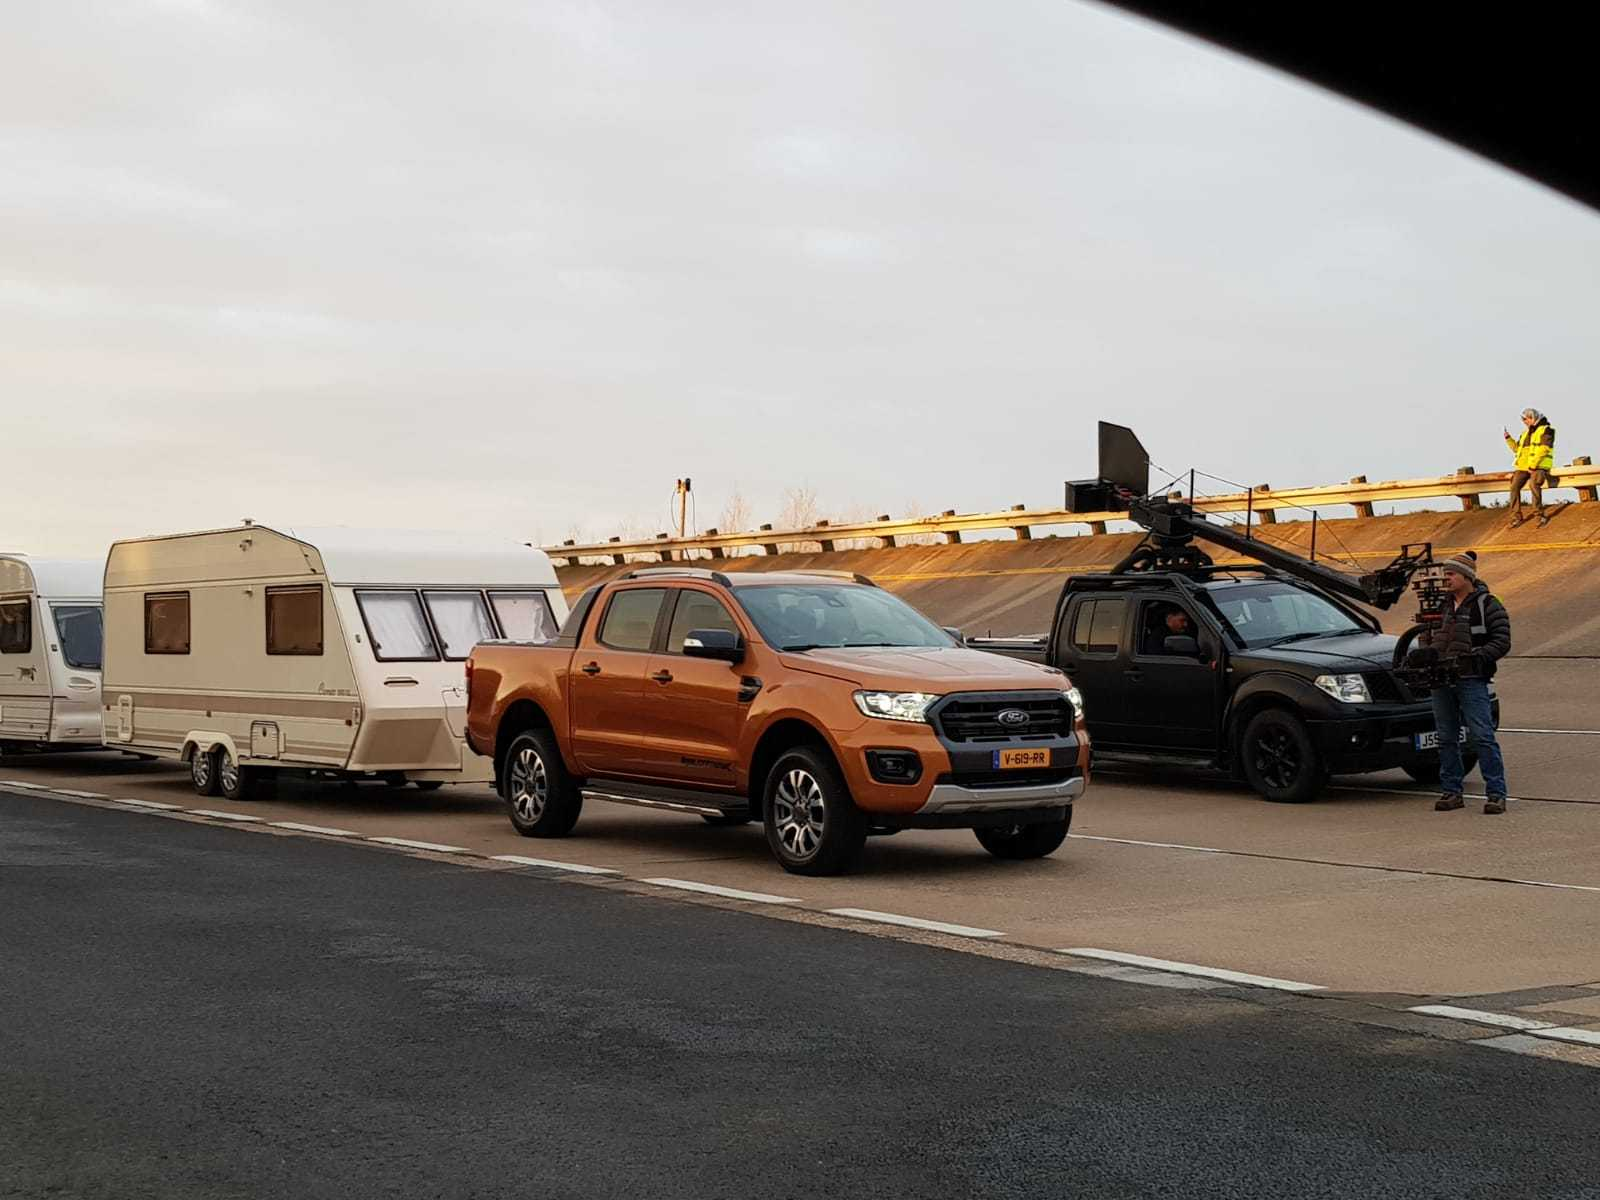 The New Ford Ranger - Tow whatever the hell you want!